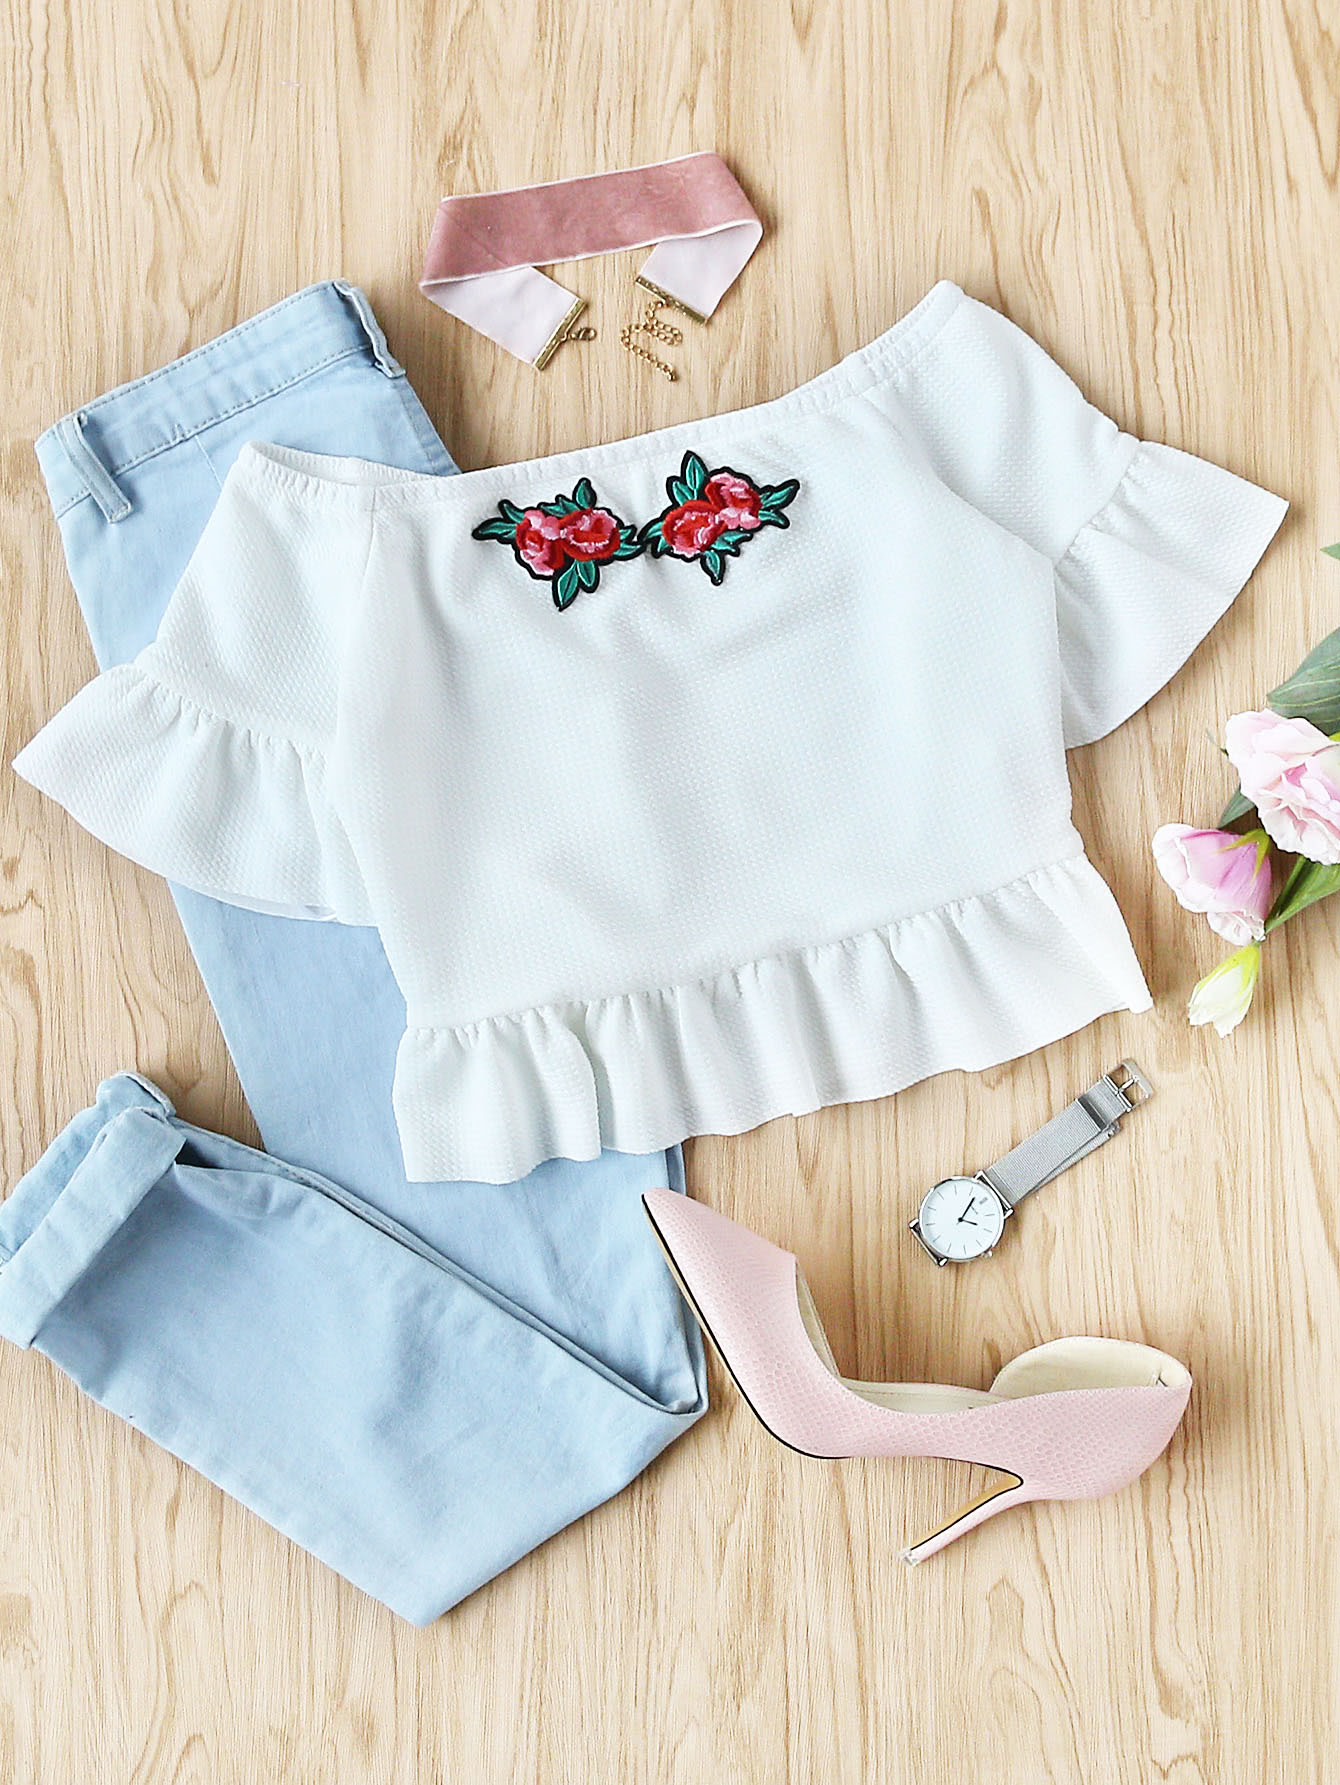 Embroidered Rose Applique Textured Bardot Top embroidered rose applique side split belt dress